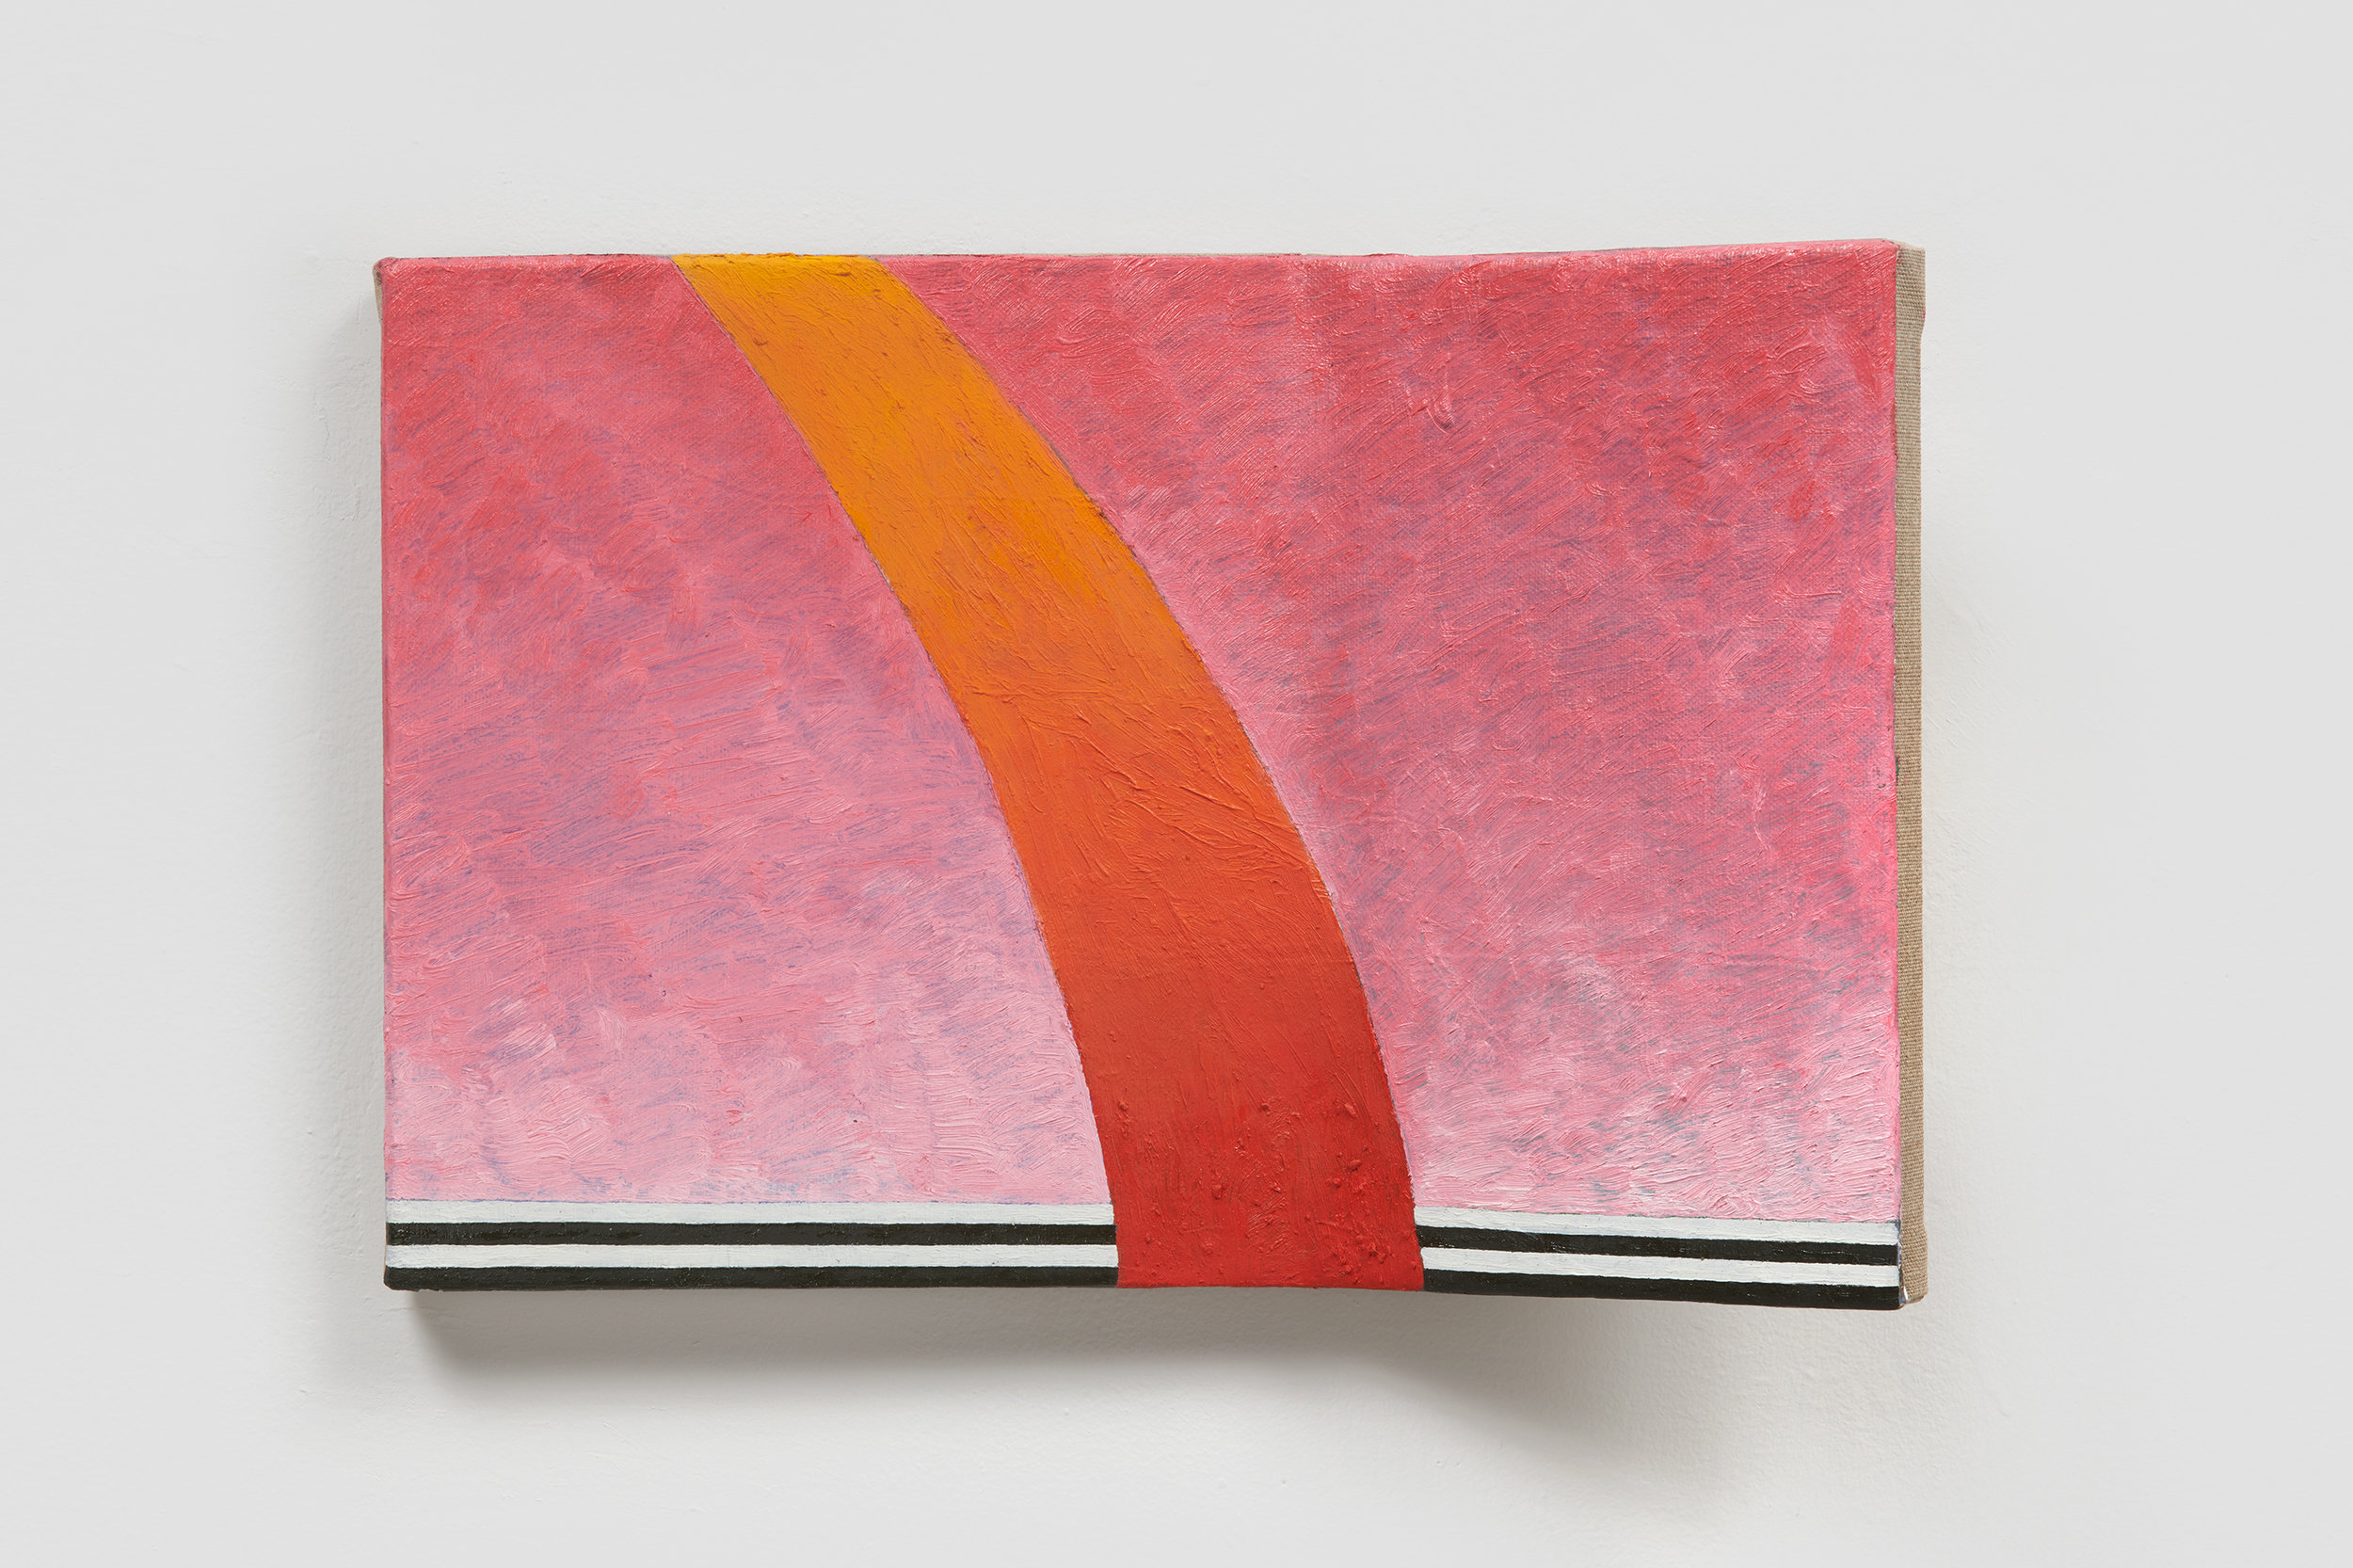 Ezra Tessler   Roamin Omen,  2018 Oil and wax on linen on shaped wood 10 x 15 x 4 inches